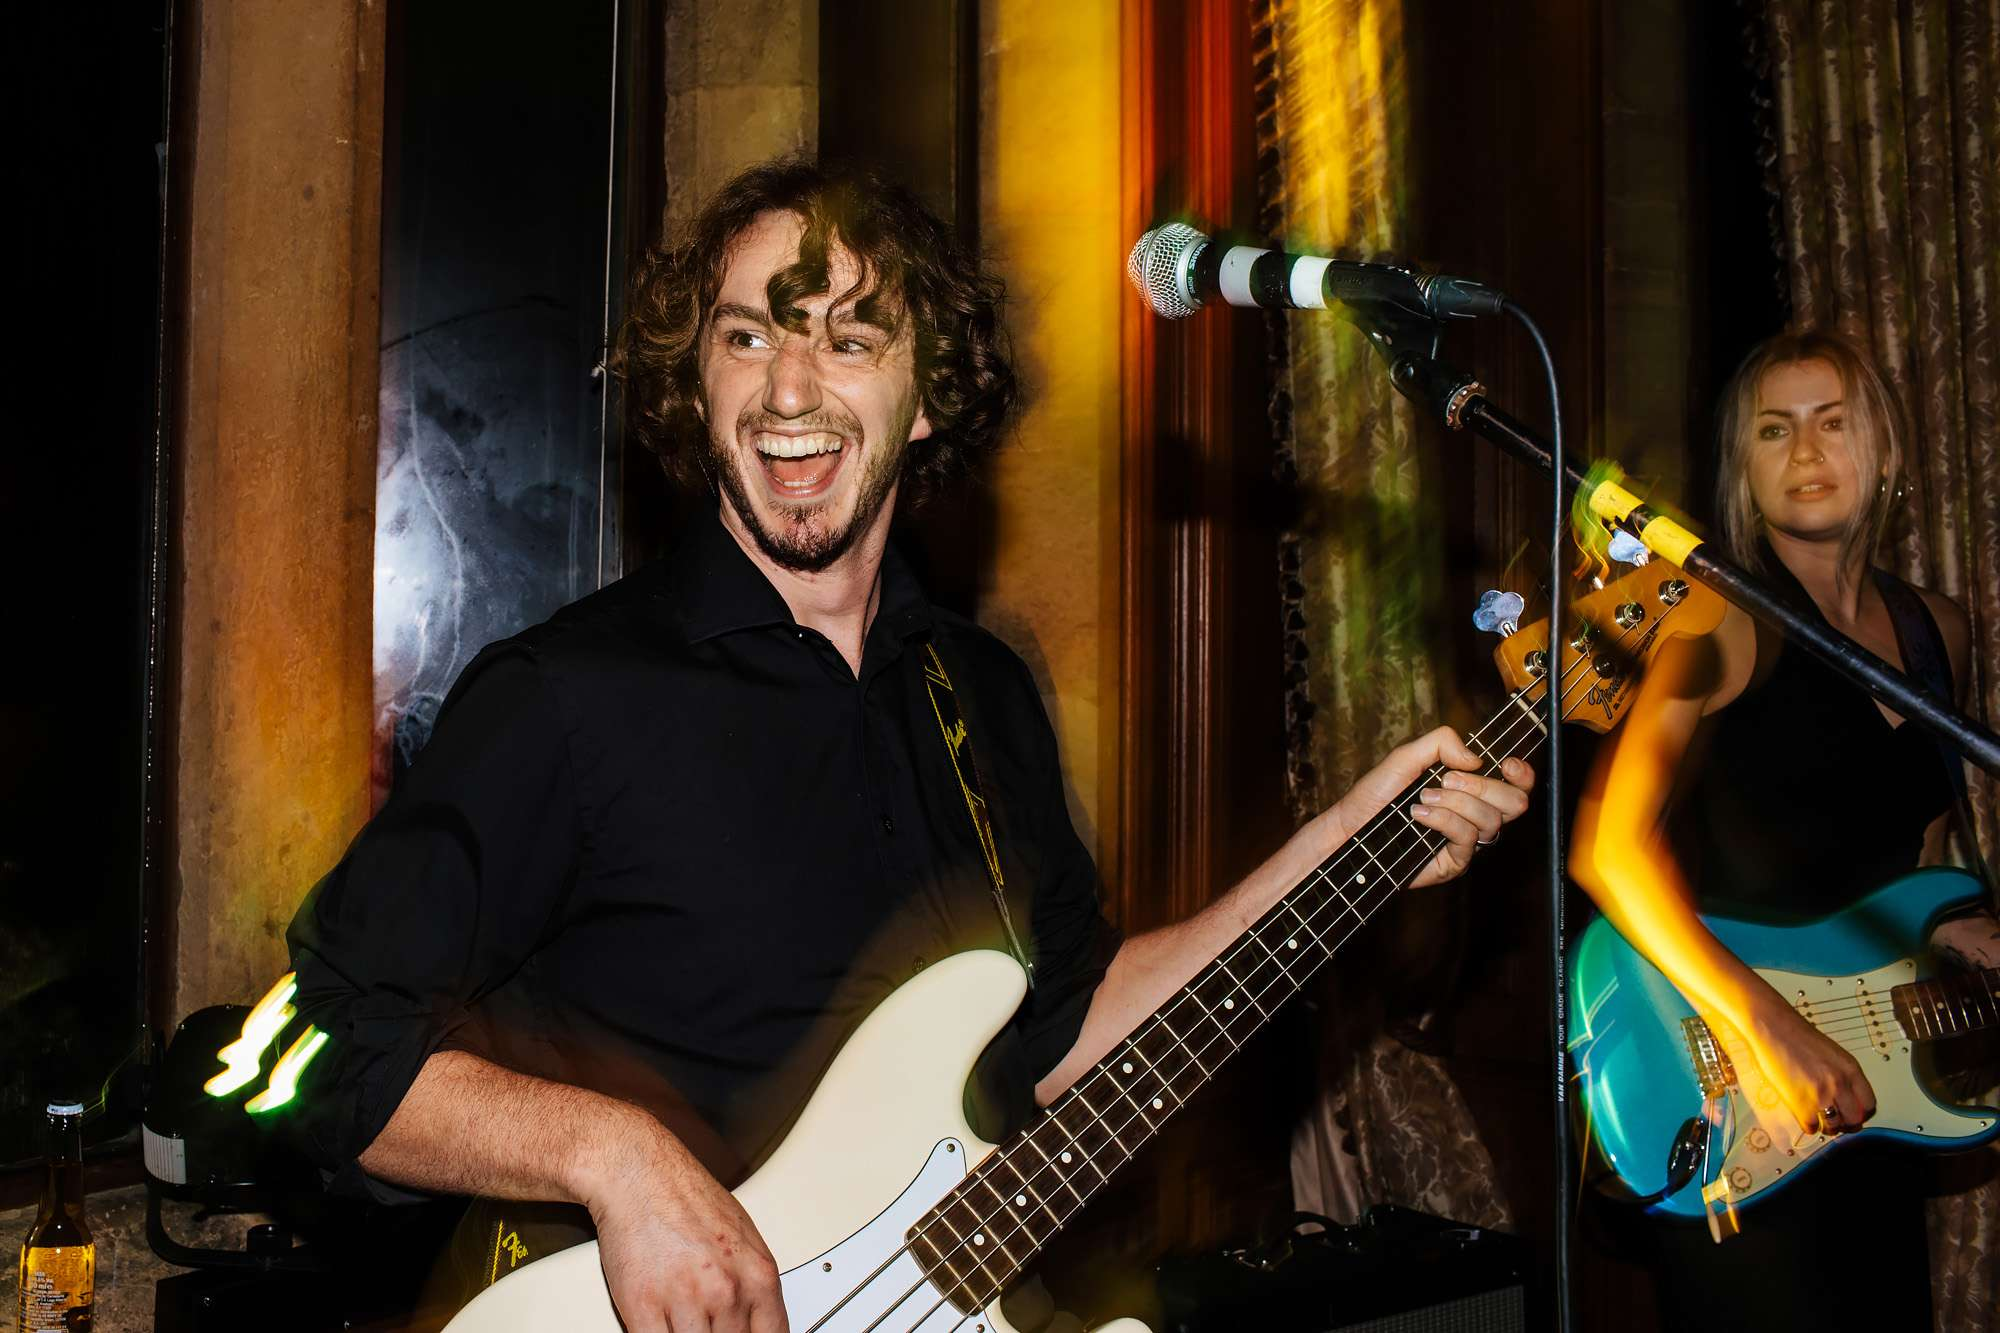 Bass player laughing at a wedding